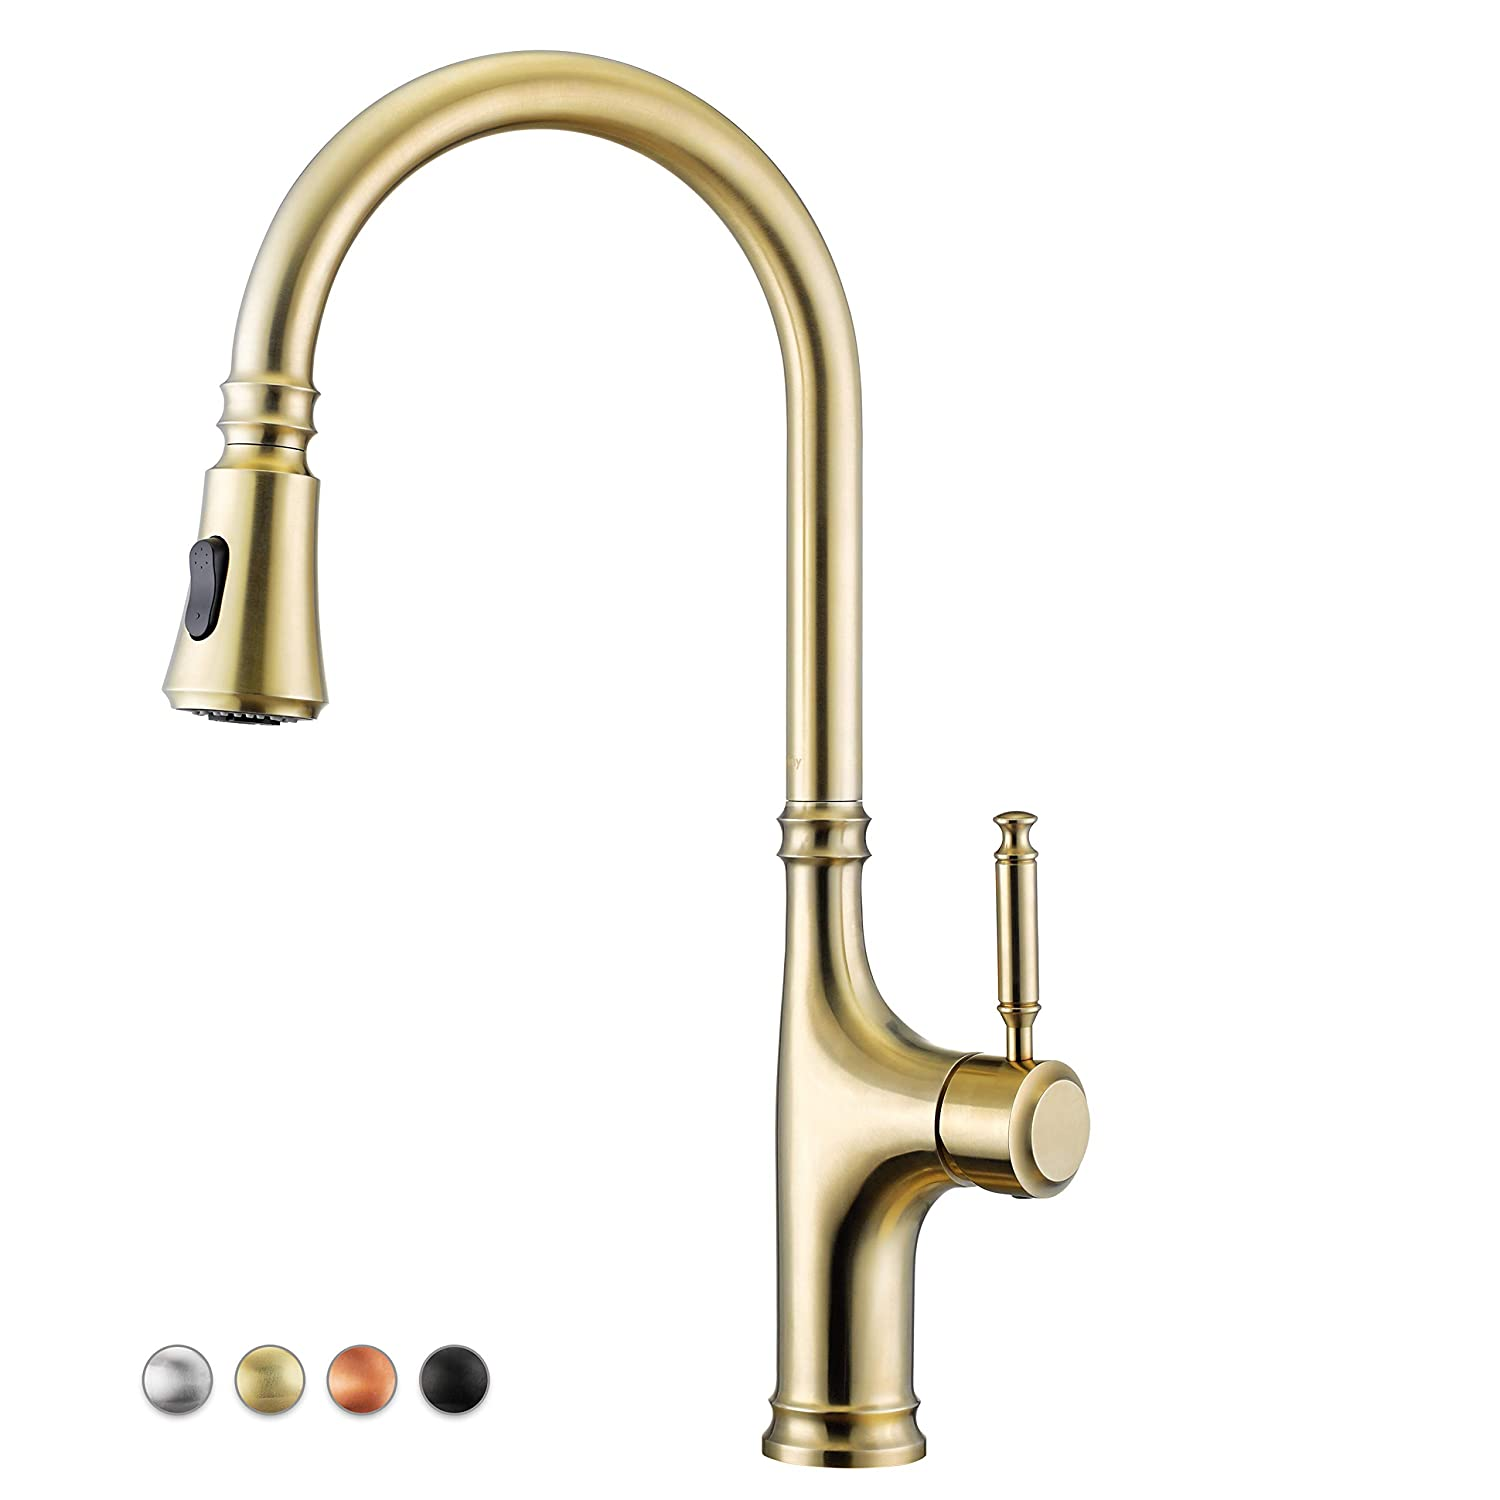 Primy Kitchen Faucets with Pull Down Sprayer, Modern Lead-Free Single Handle High-Arc Kitchen Sink Faucet With Deck Plate, Height 19-51 64 , Luxurious PVD Vibrant Champagne Gold Finished, 2117